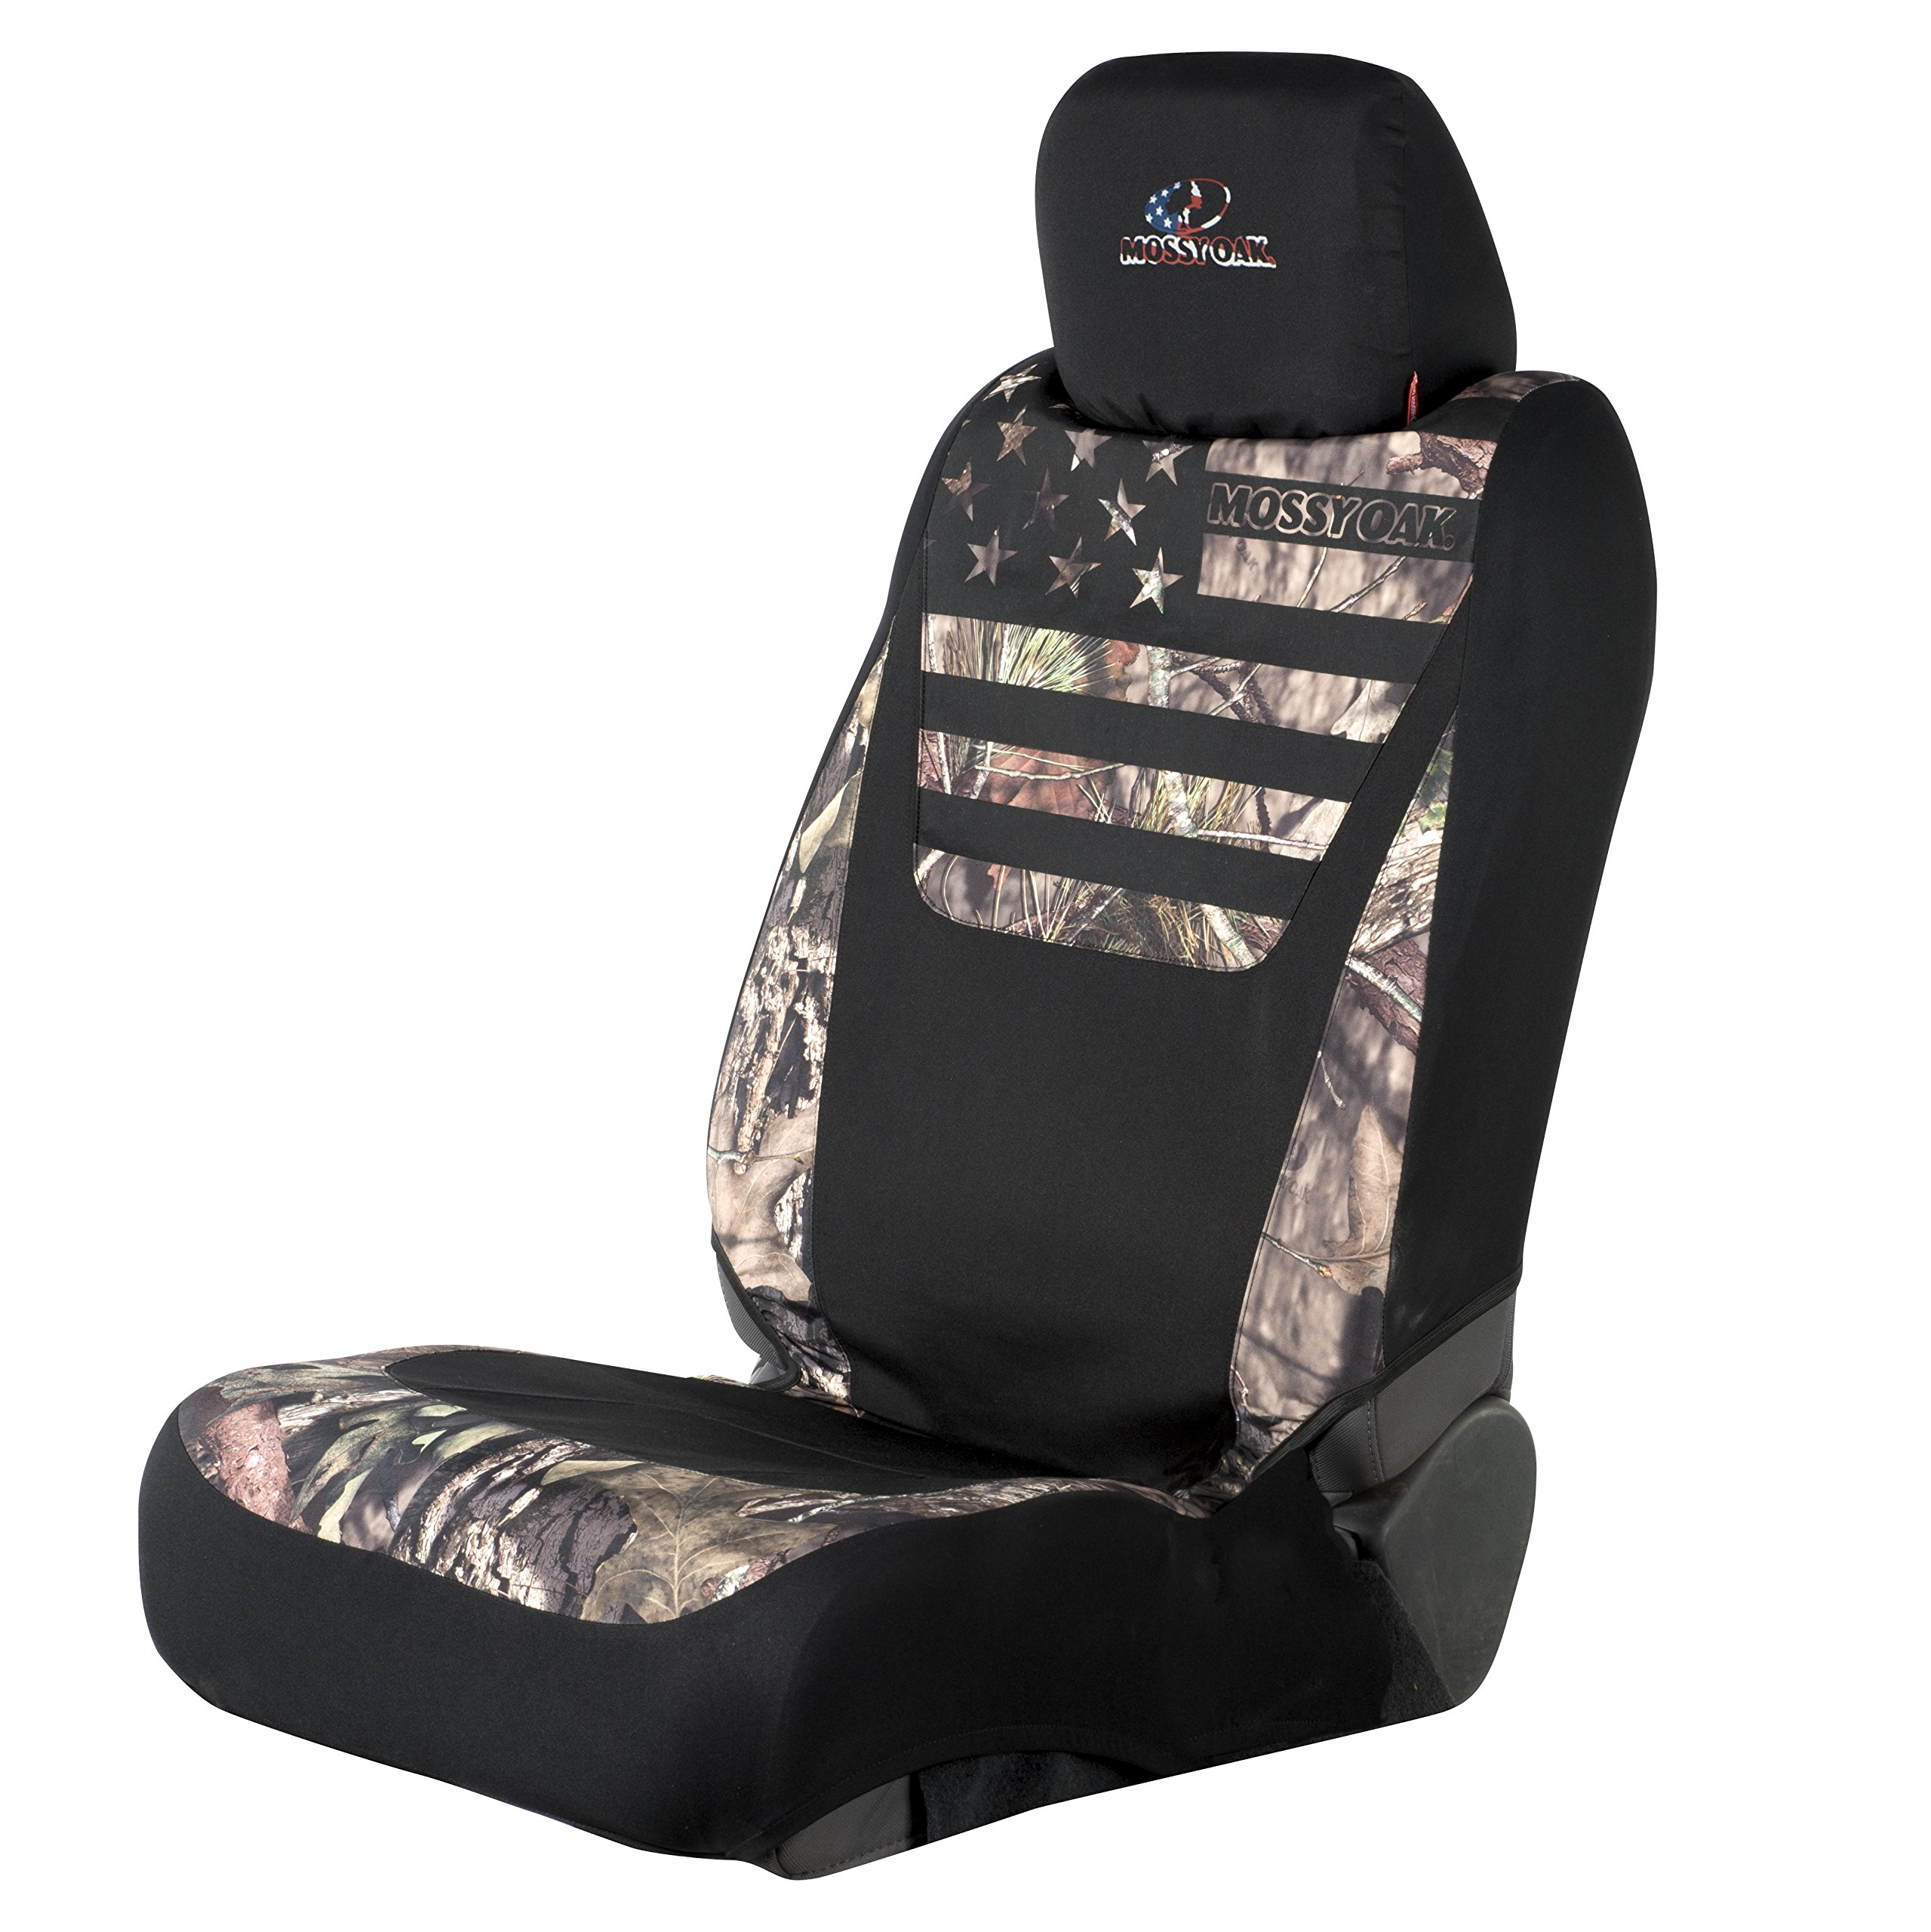 Cheap Camo Seat Cover, find Camo Seat Cover deals on line at